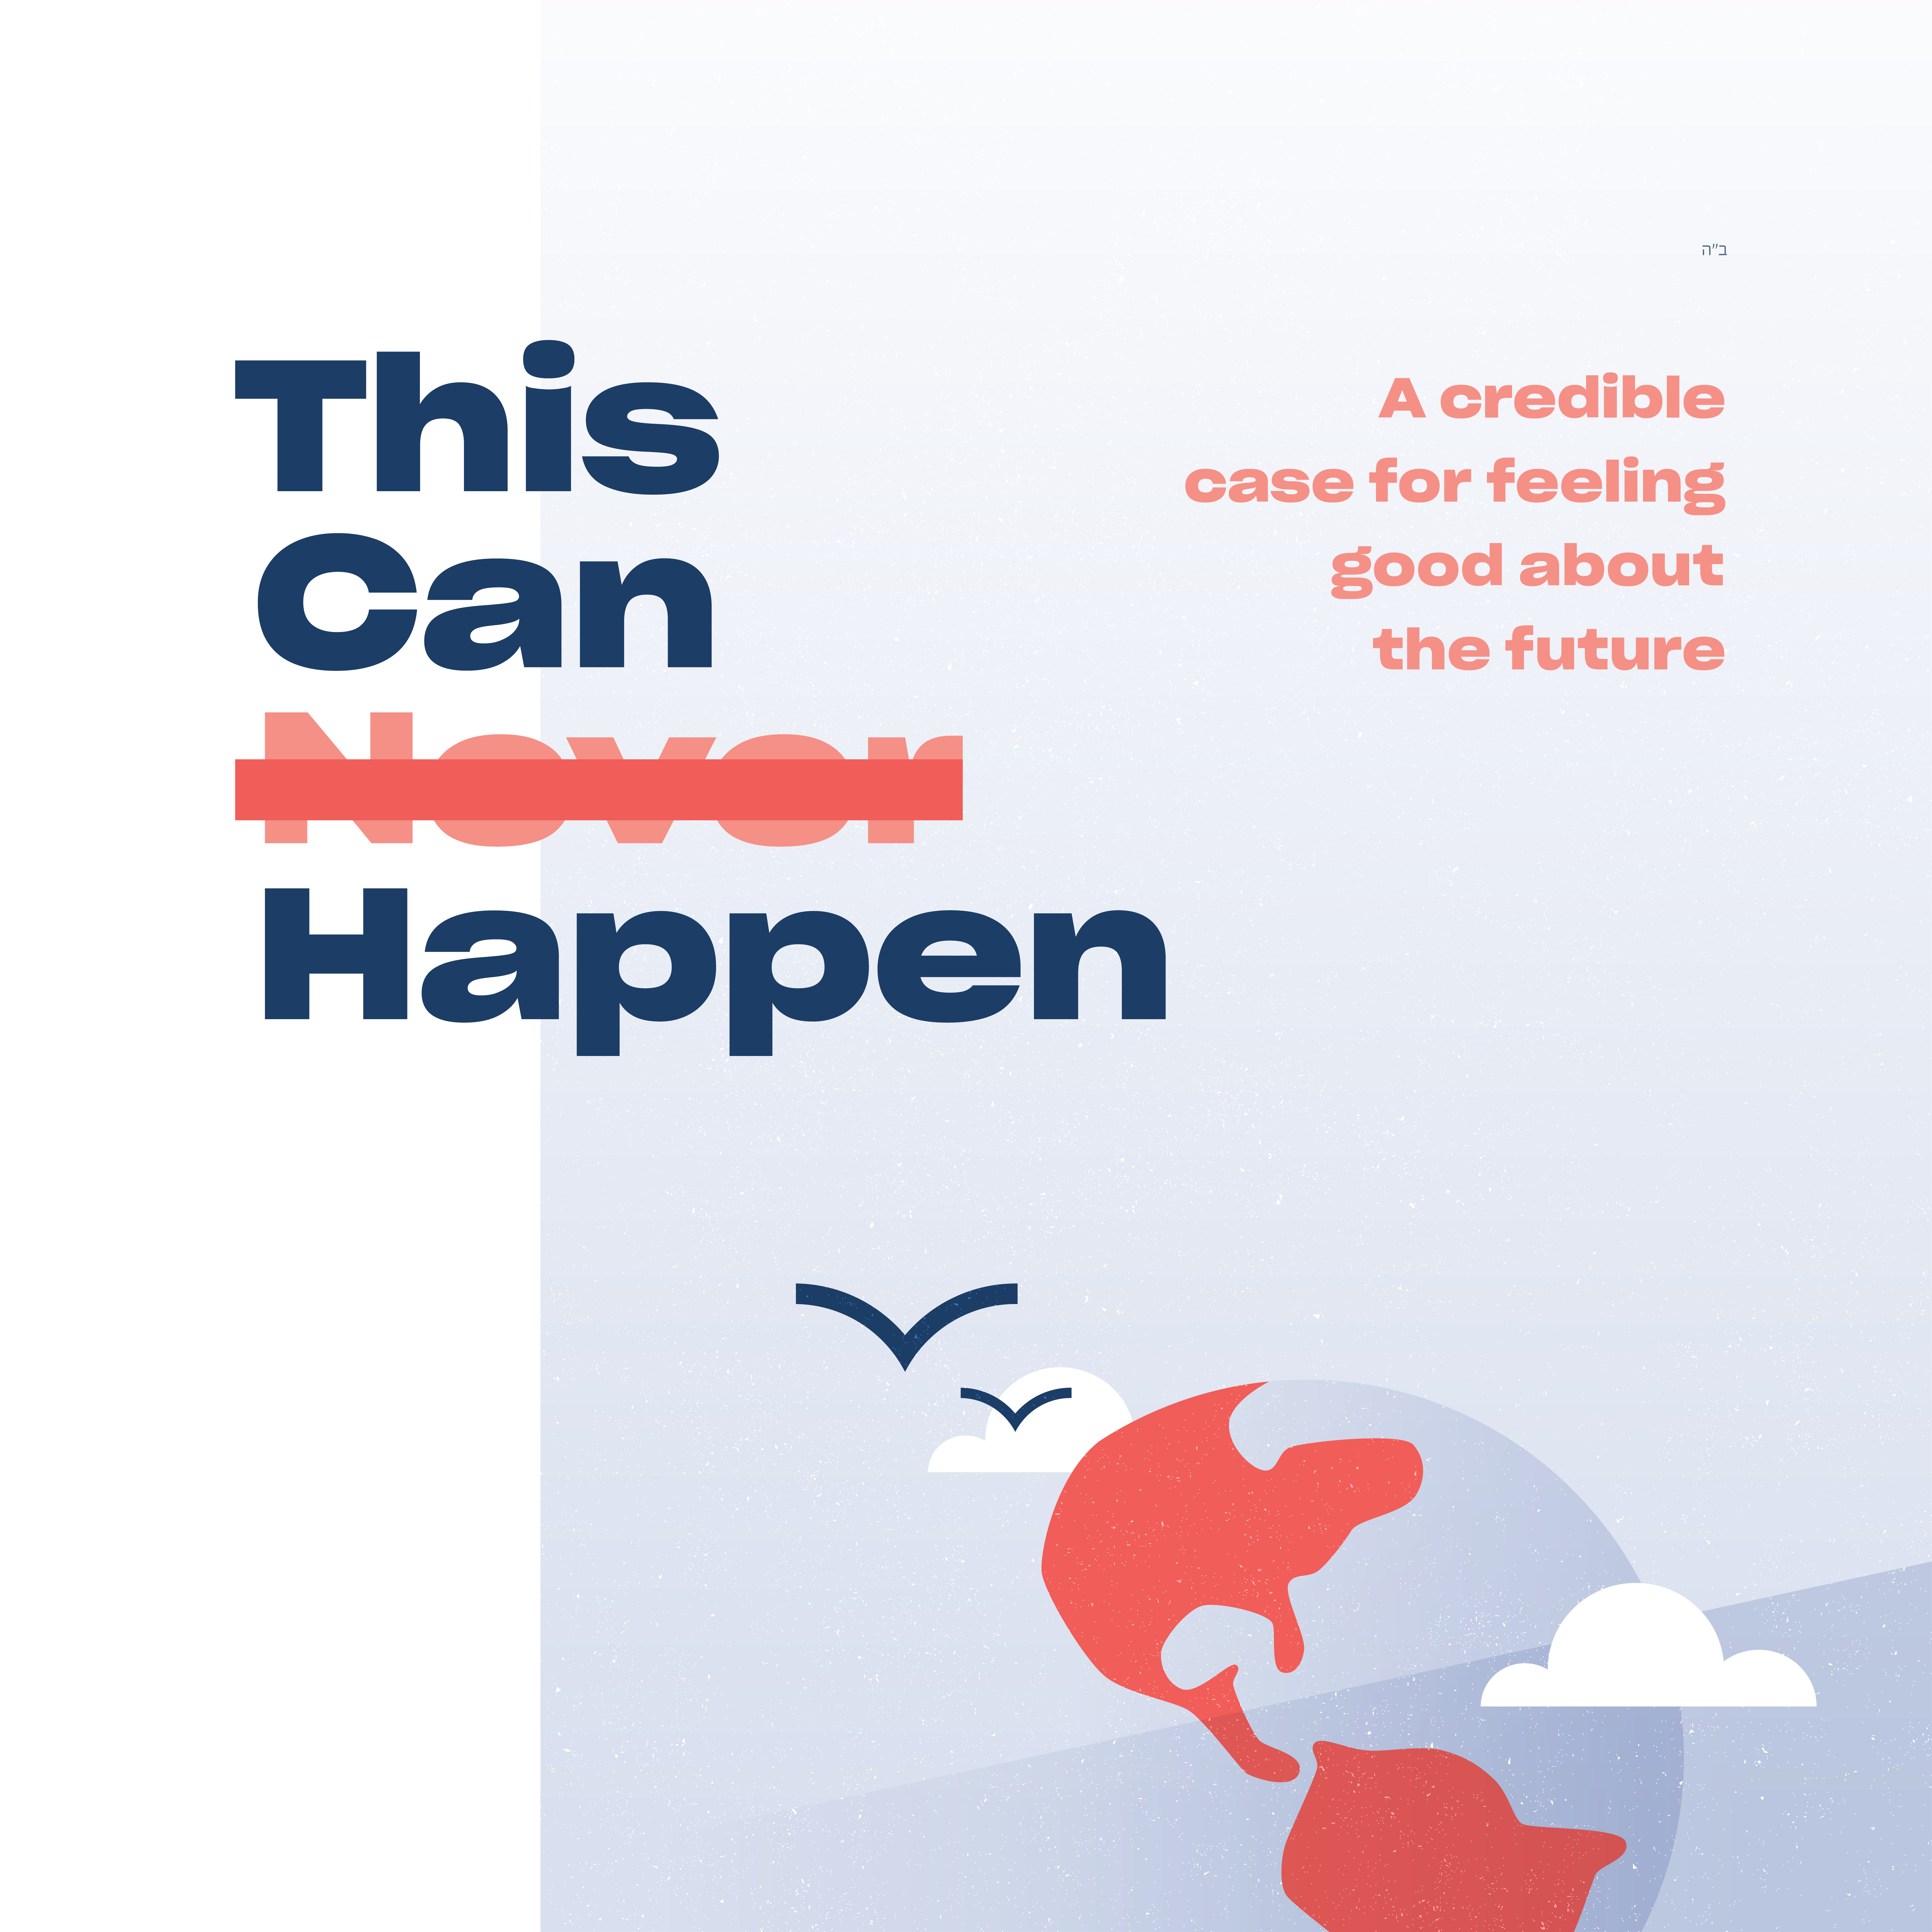 This Can Happen: A Credible Case for Feeling Good about the Future